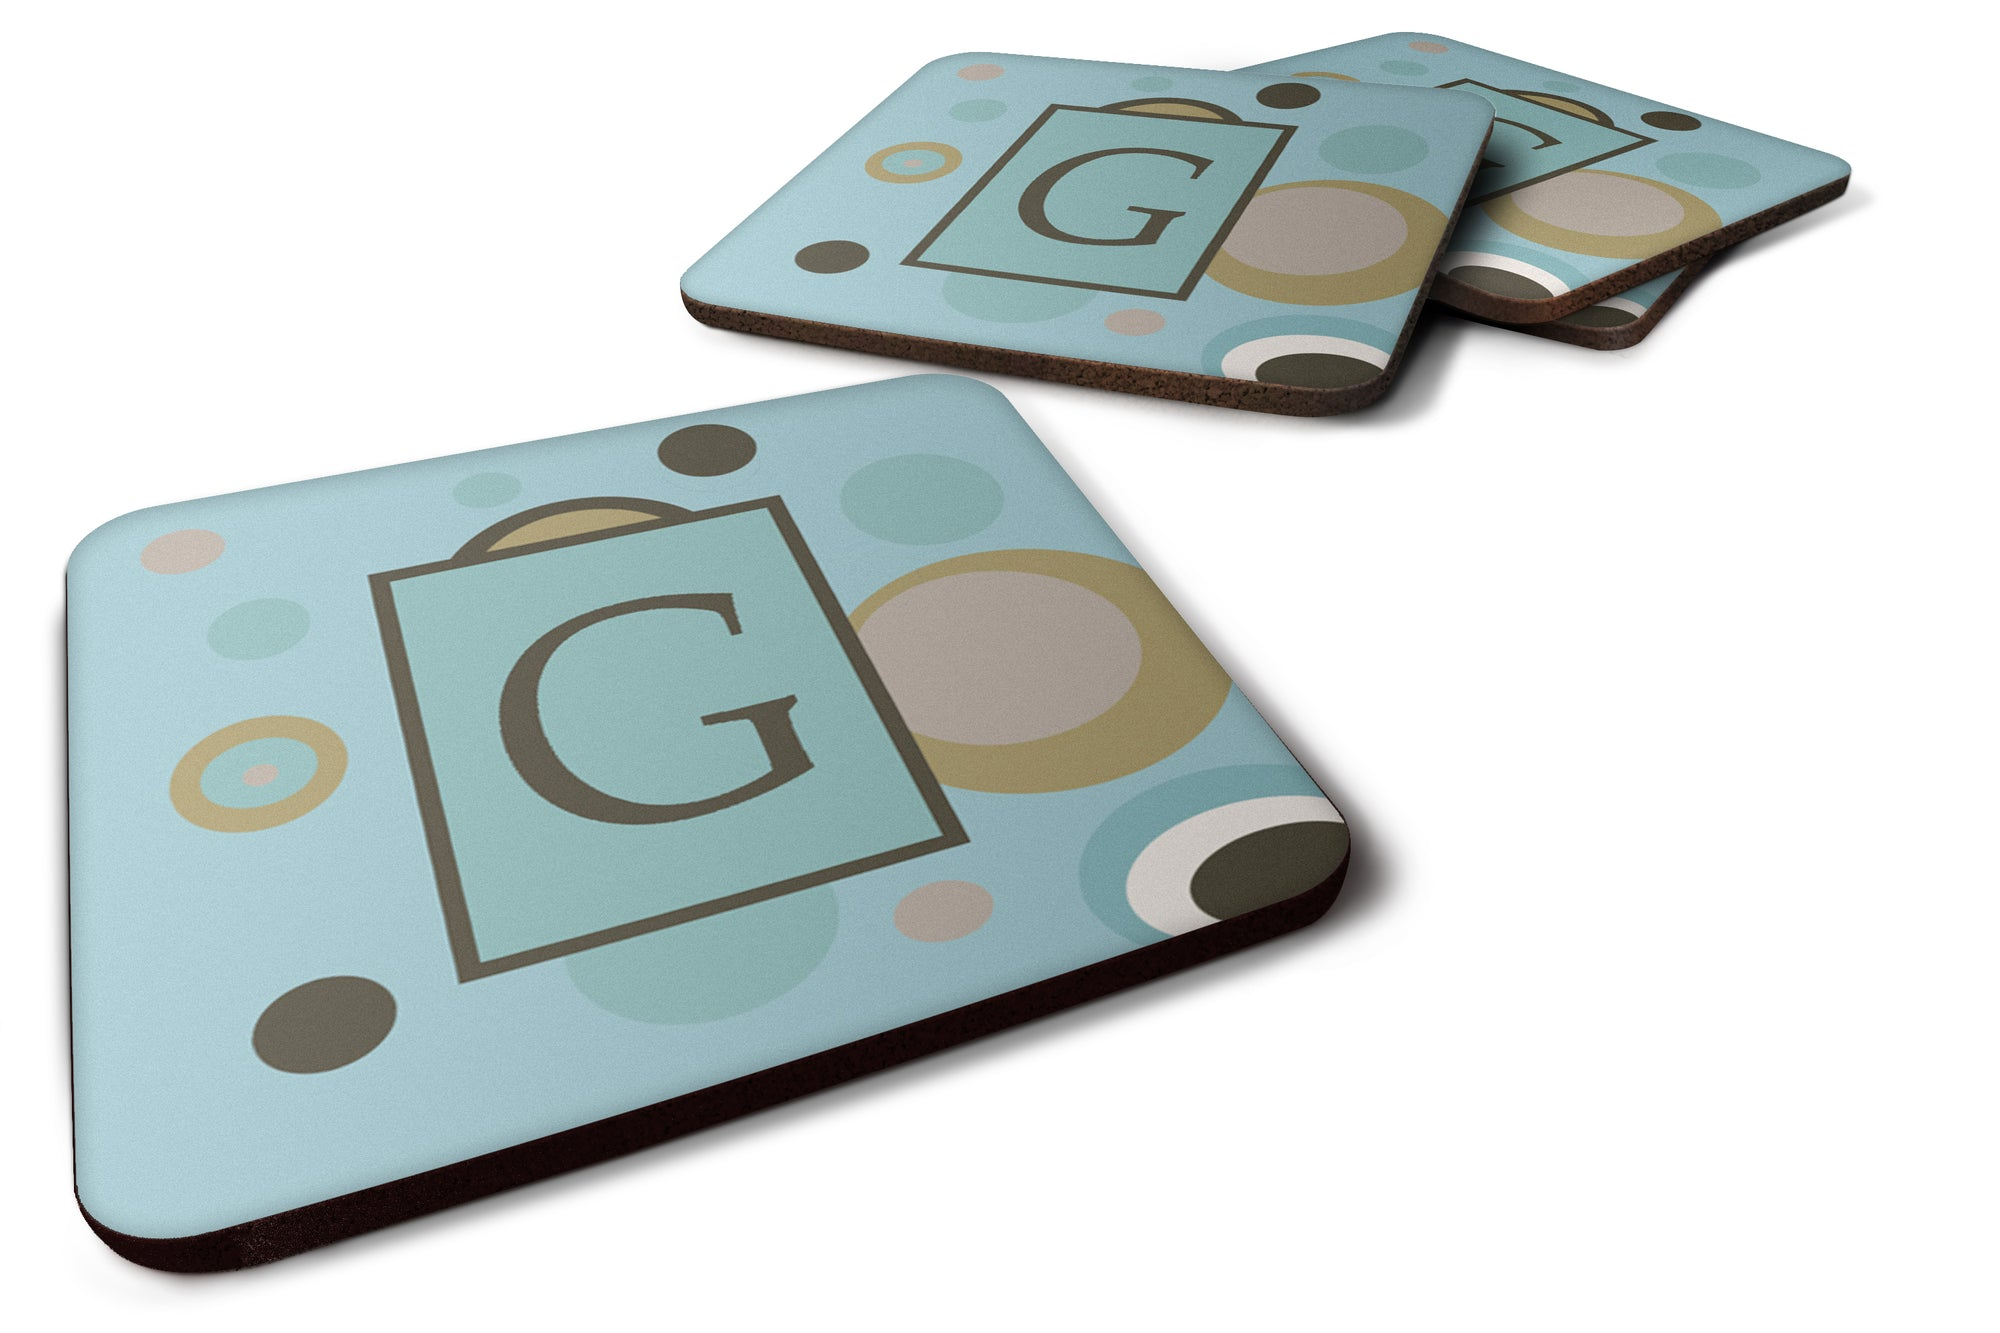 Set of 4 Monogram - Blue Dots Foam Coasters Initial Letter G by Caroline's Treasures